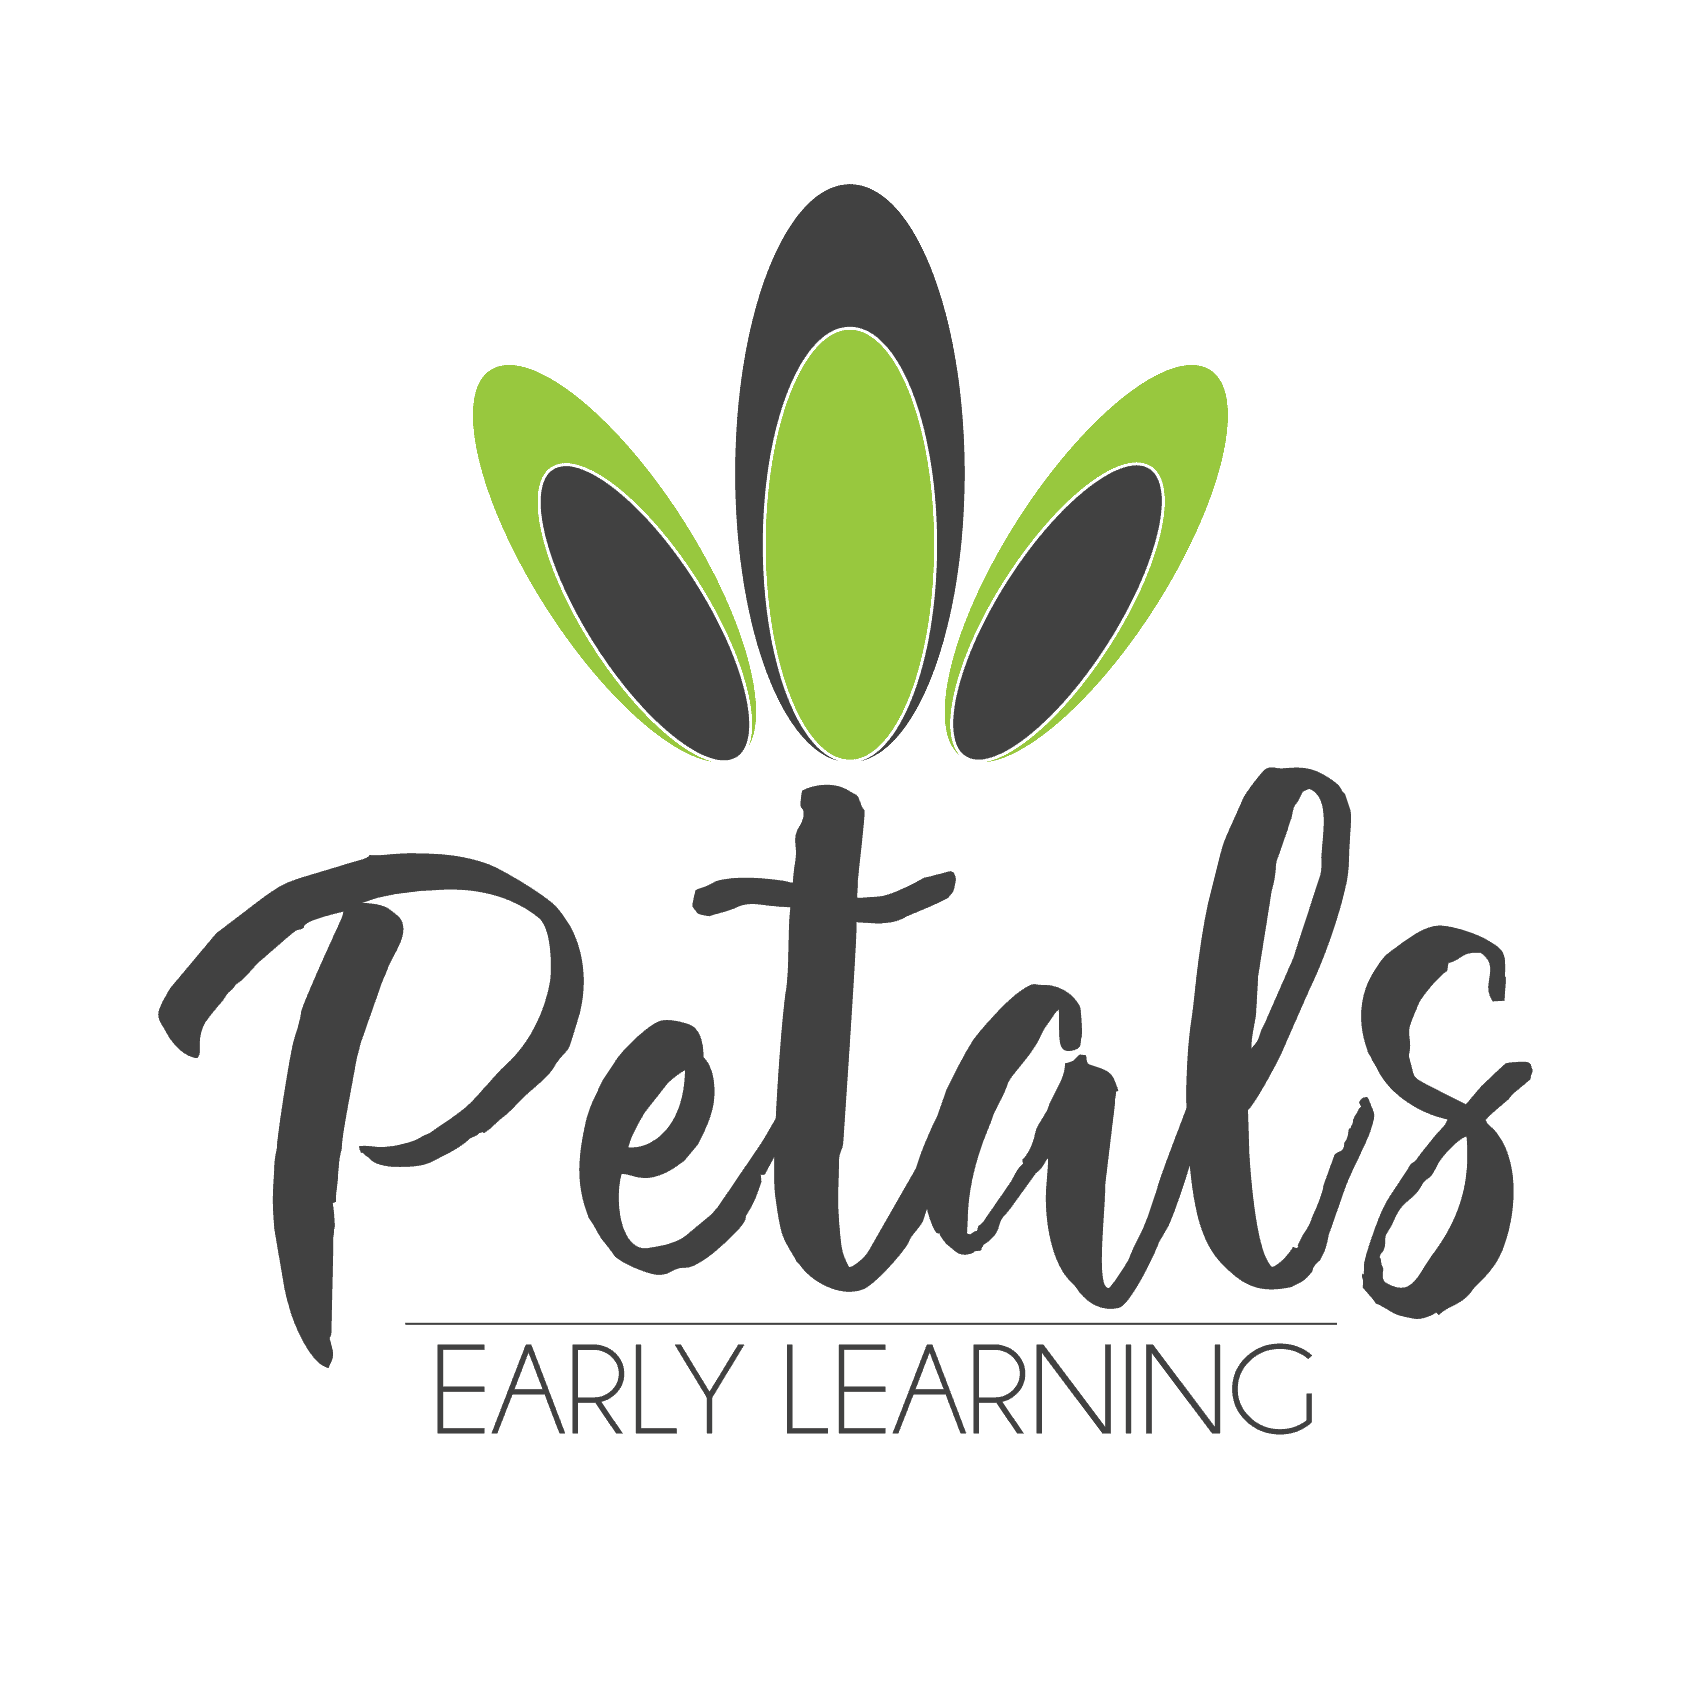 Petals Early Learning